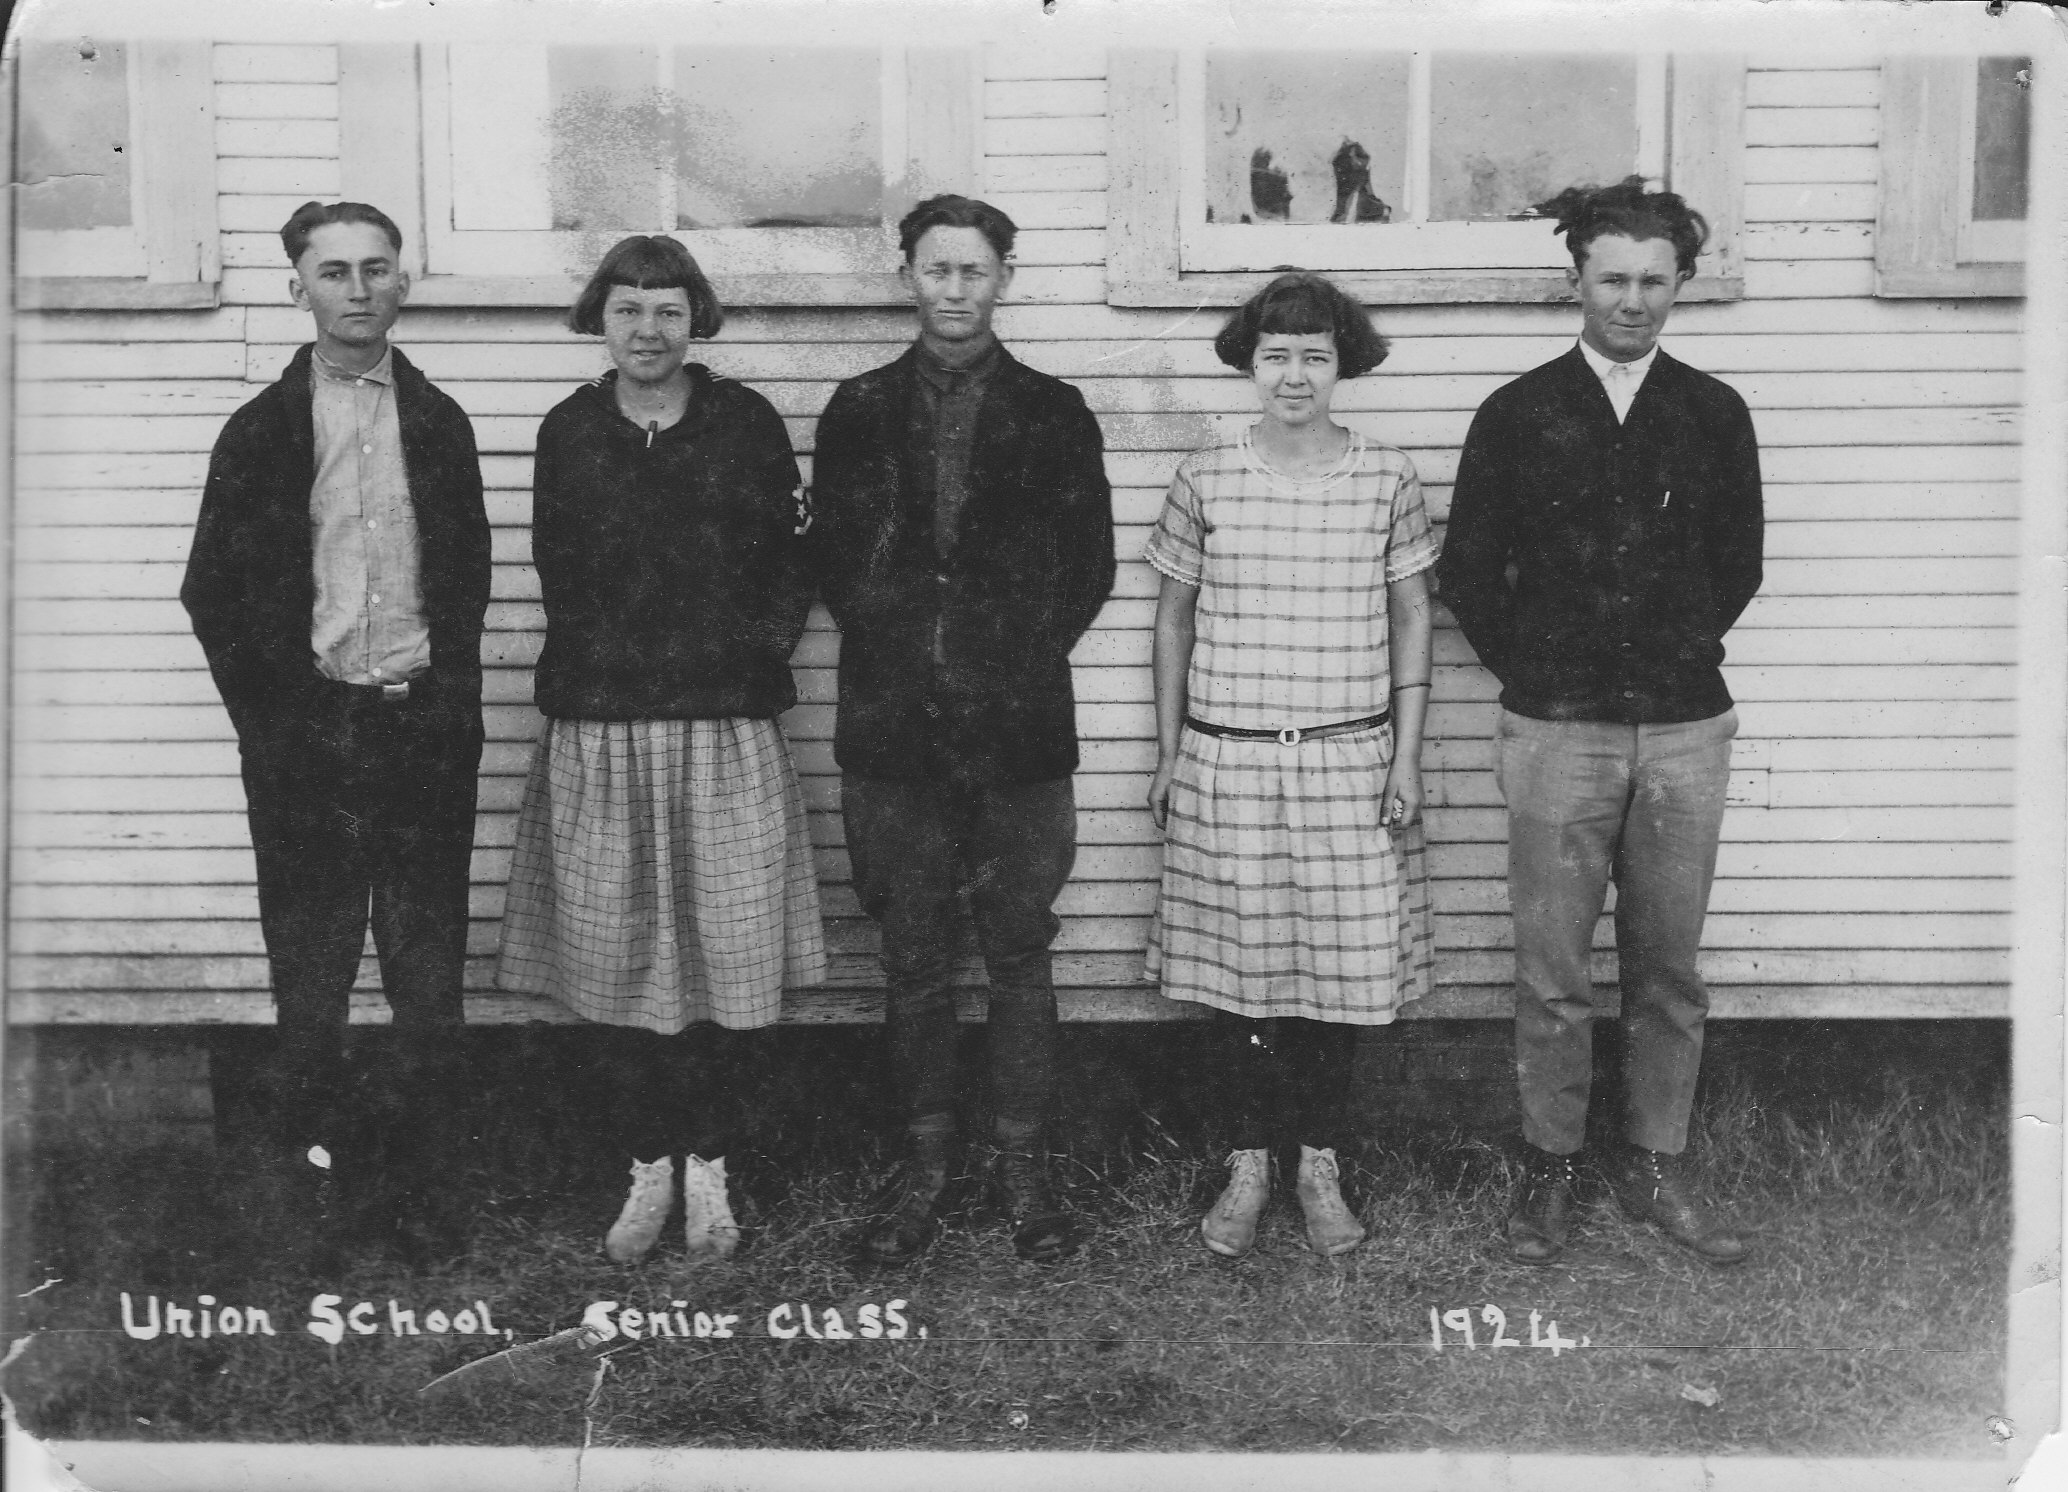 Union School Senior Class 1924